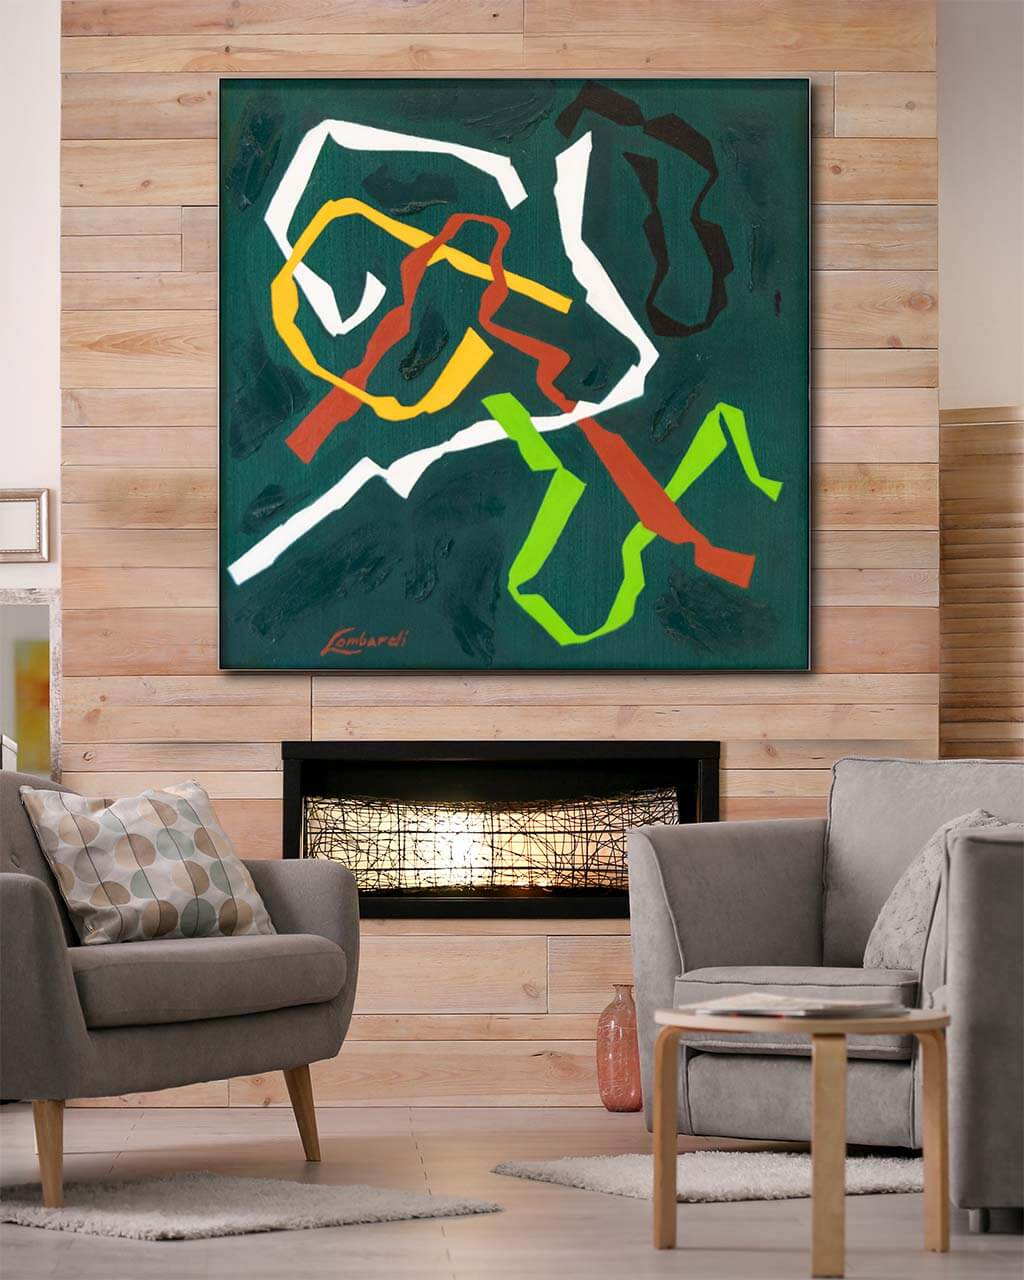 Big Abstract Colorful Shapes Wall Art Huge Decor Prints